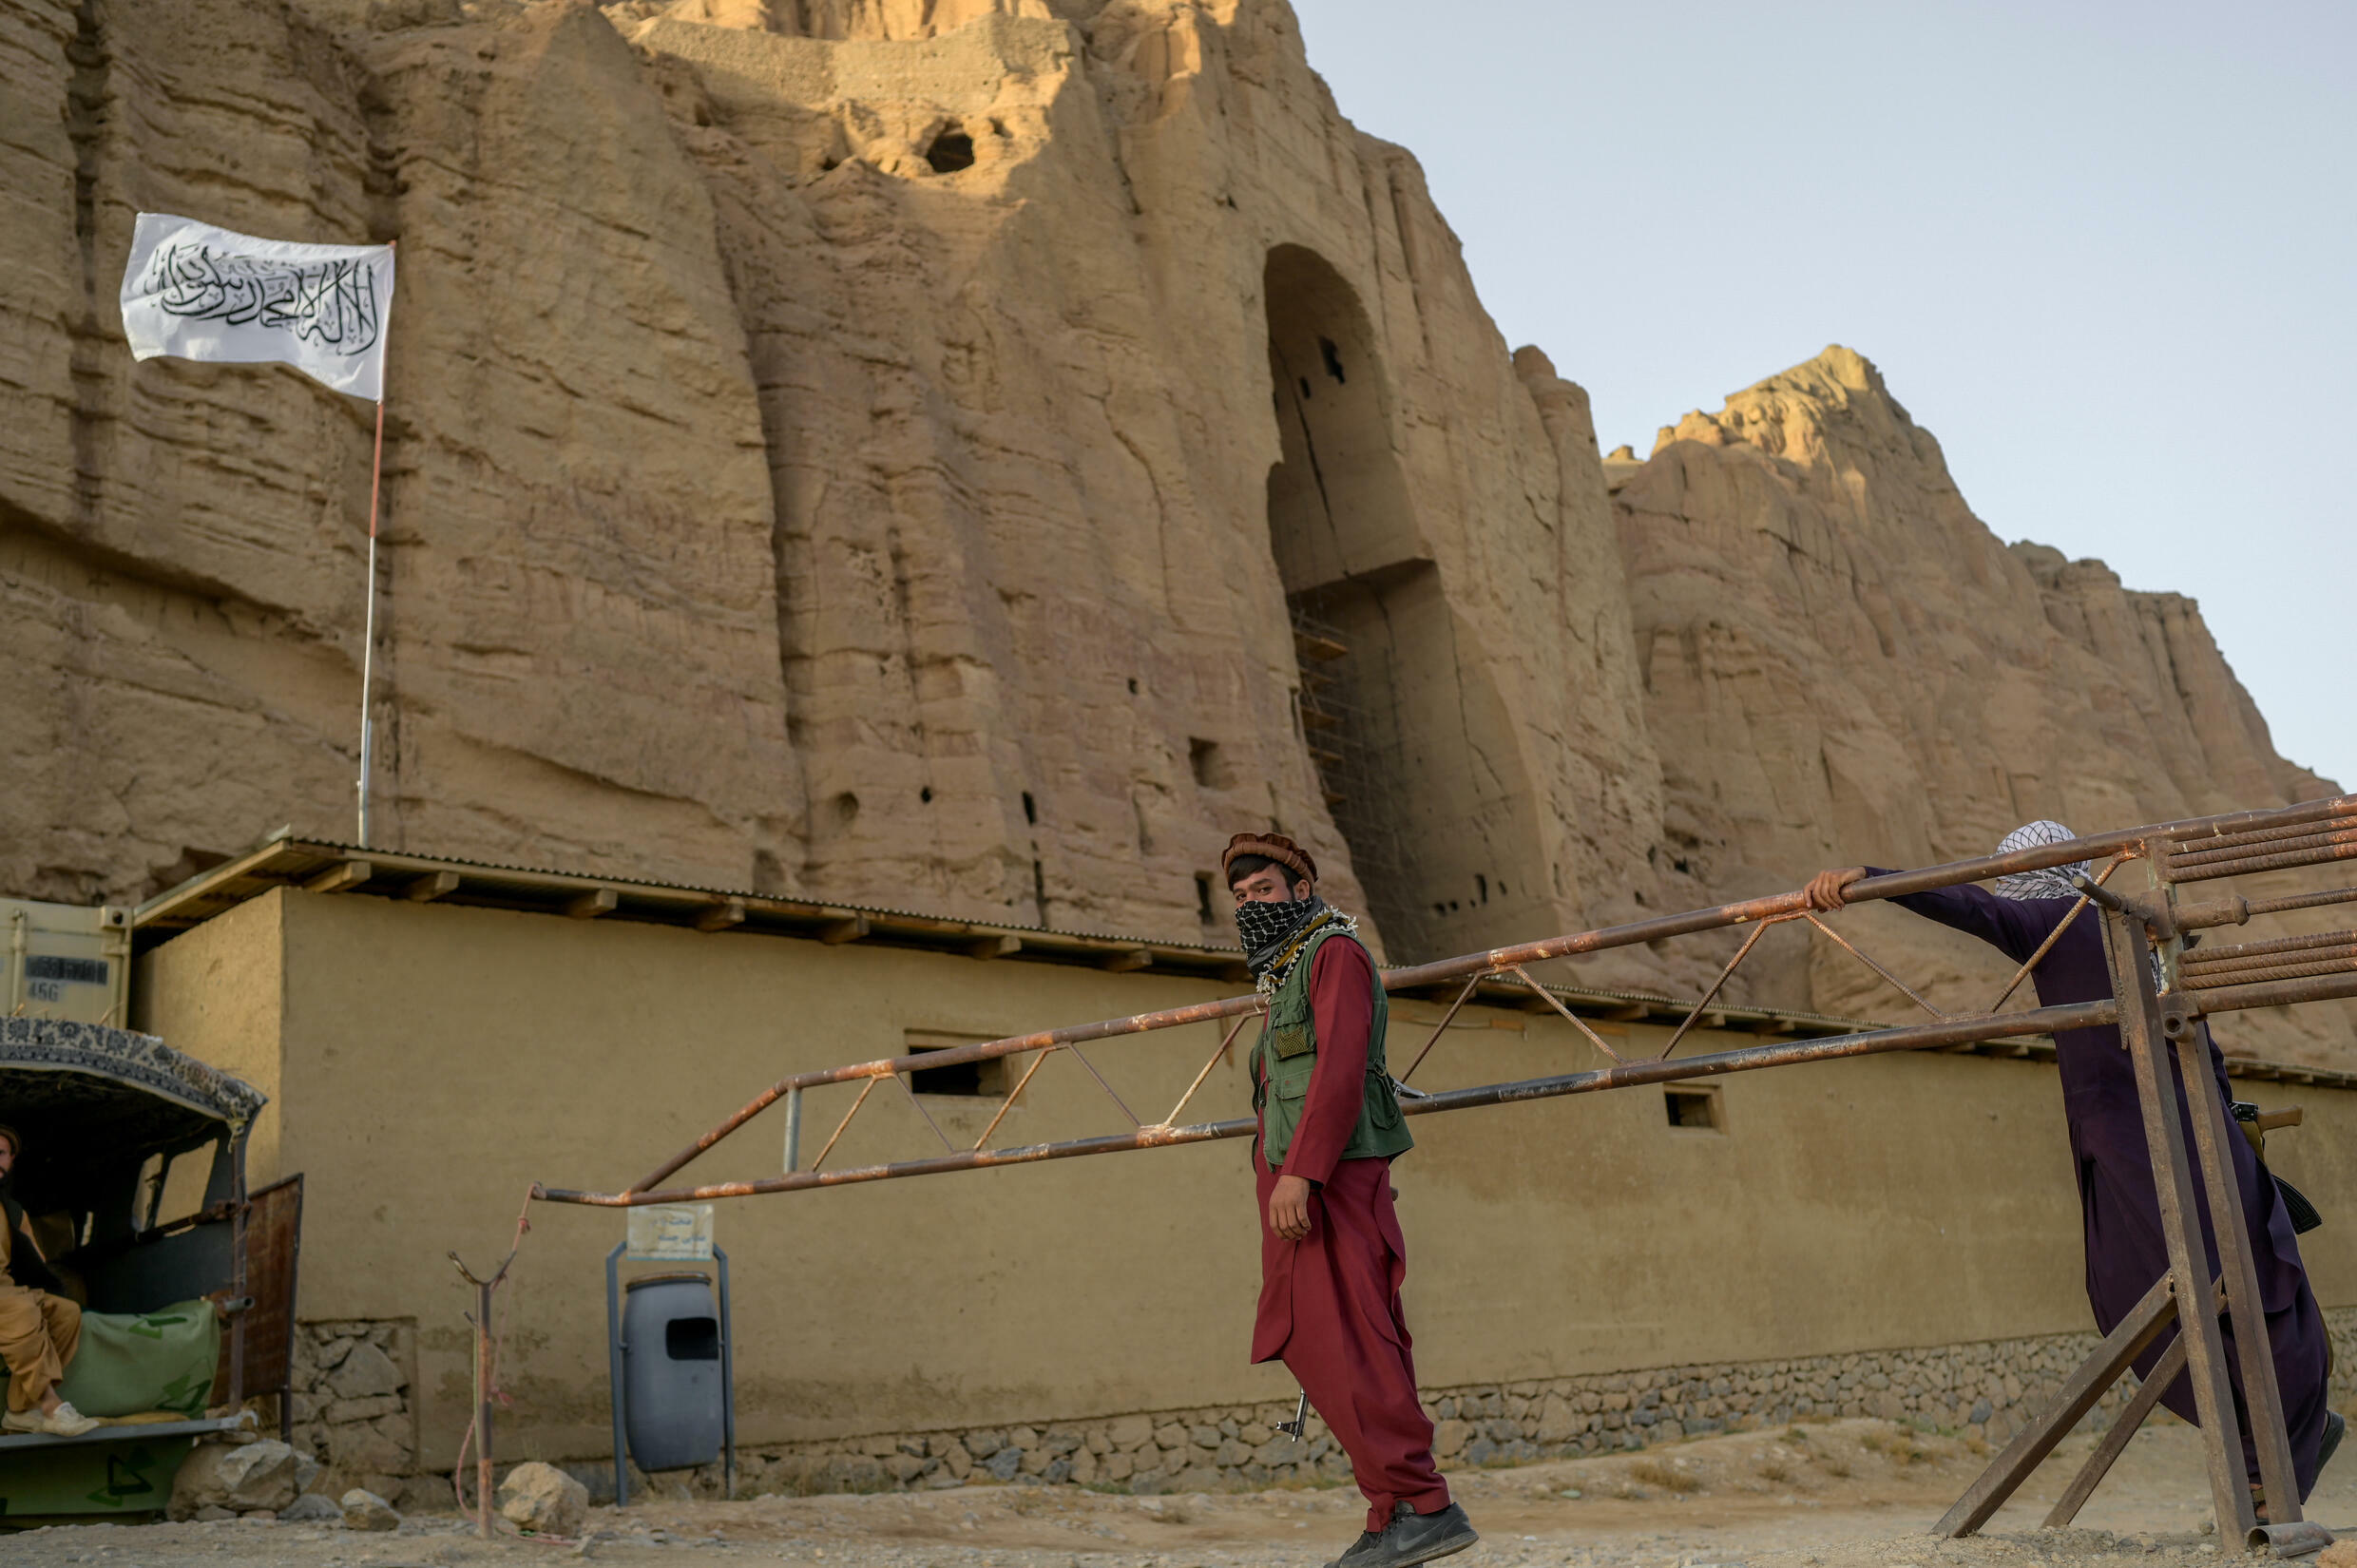 The Taliban fly their flag at the site where a Buddha statue once stood, before it was destroyed by the former militant regime